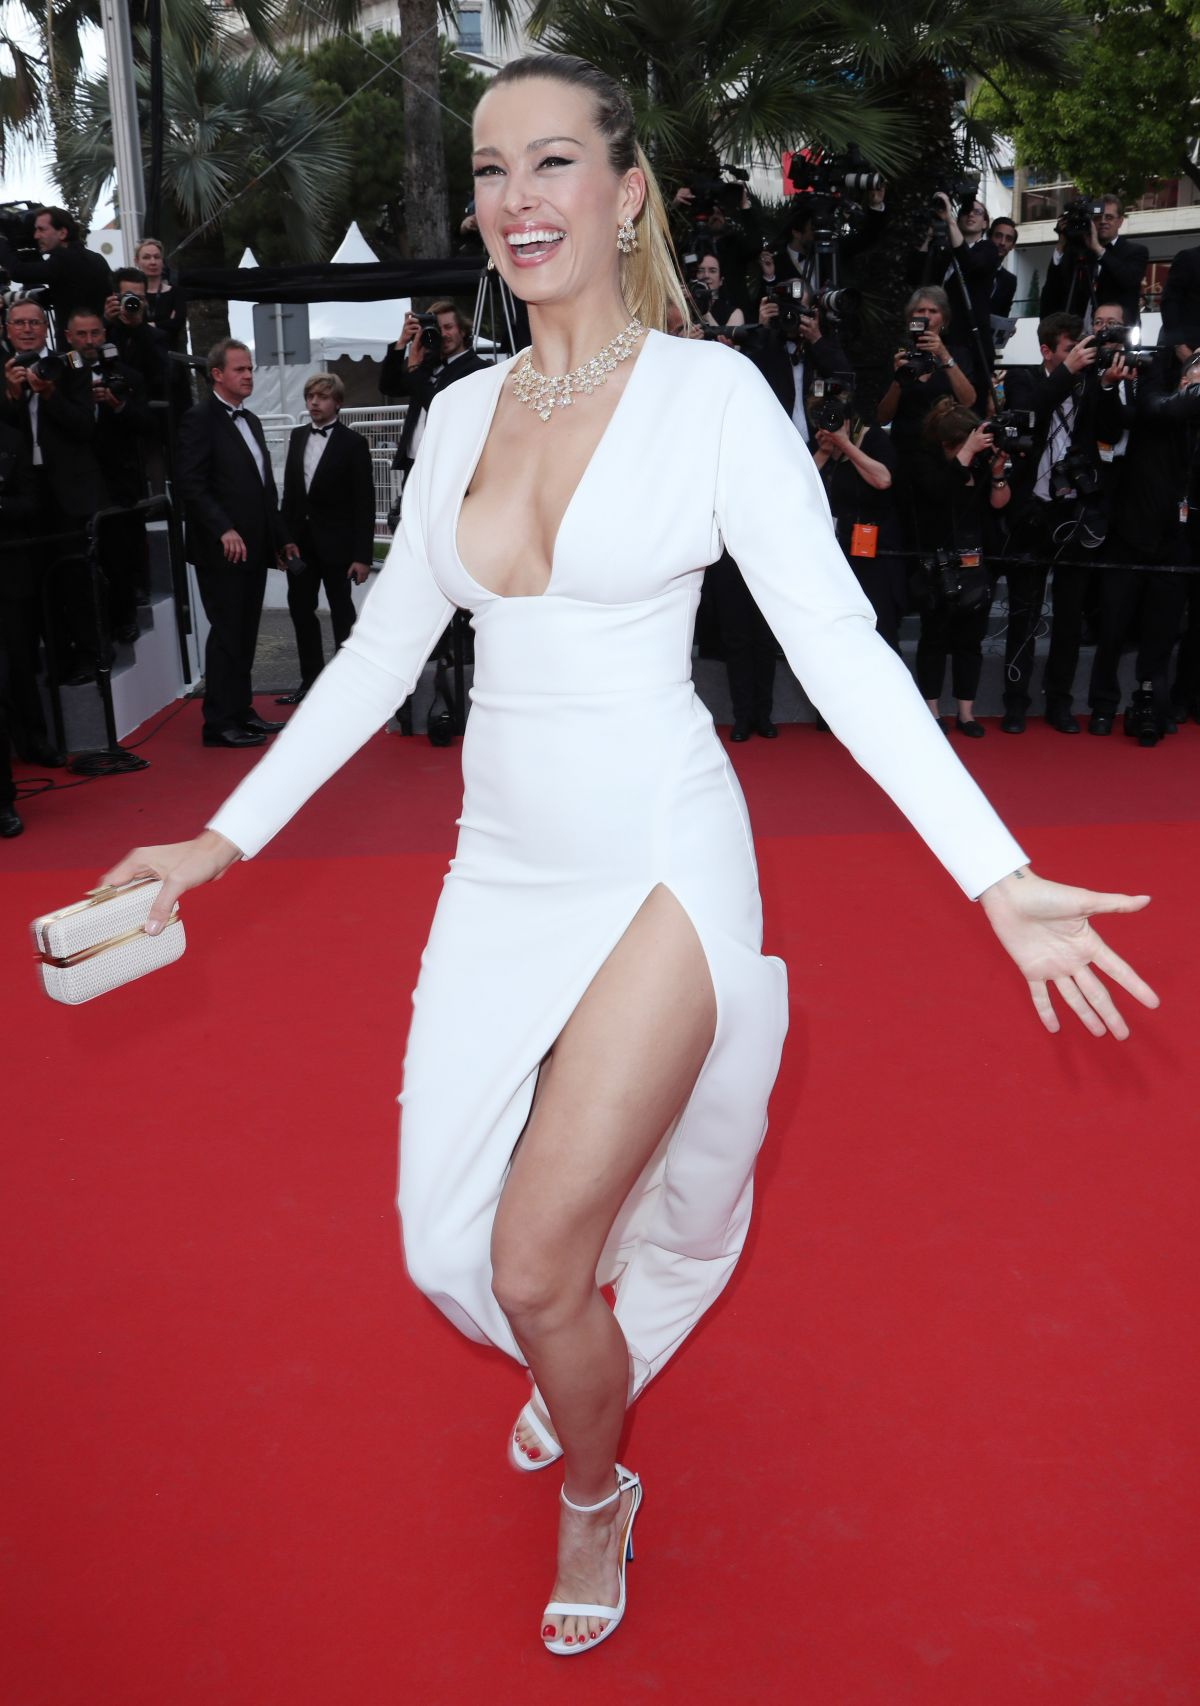 Cannes 2017 Heidi Klum Continues A Cannes Tradition In: PETRA NEMCOVA At Loveless Premiere At 2017 Cannes Film